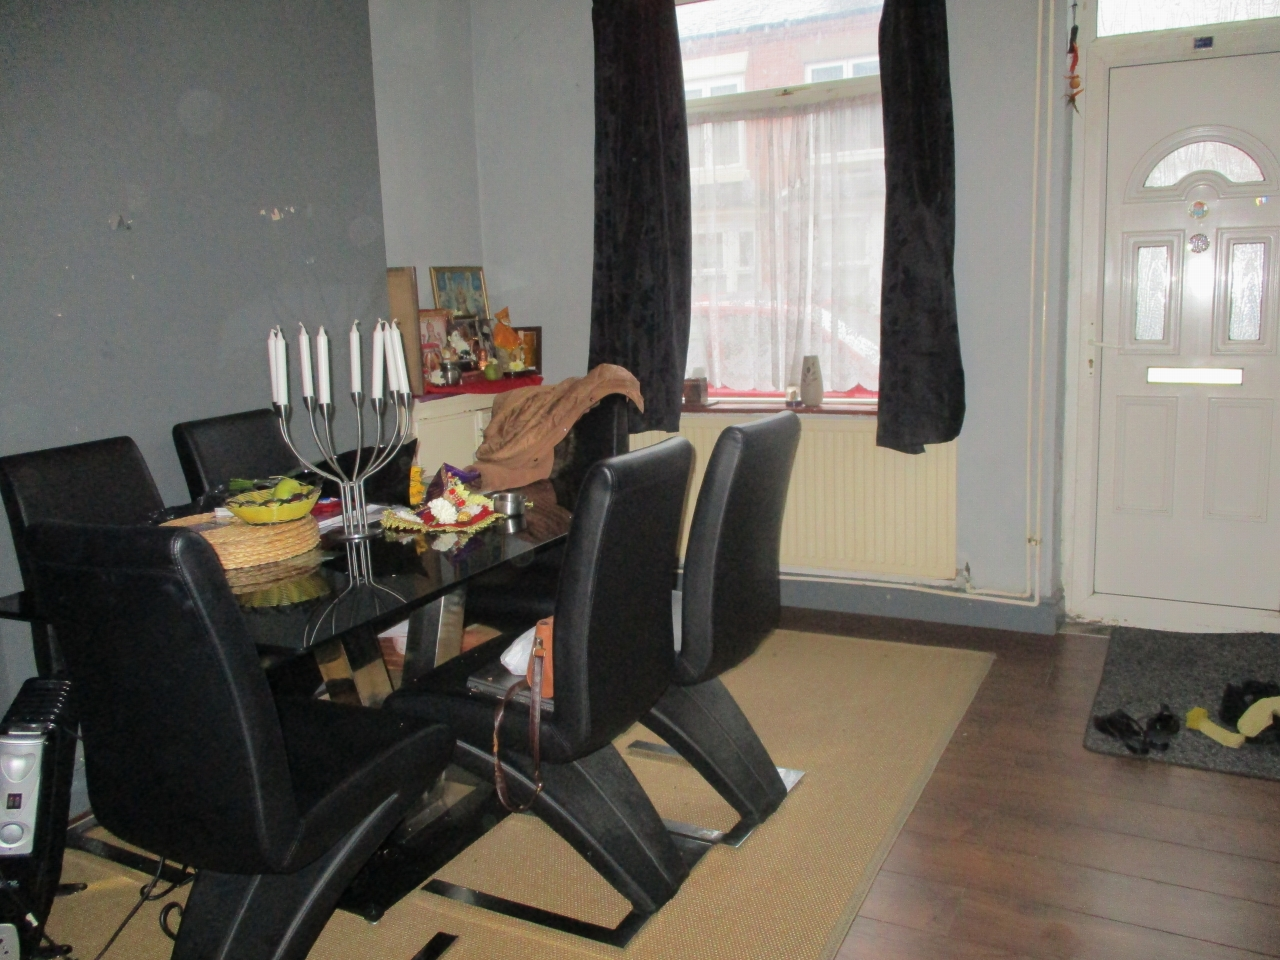 2 bedroom mid terraced house SSTC in Leicester - Photograph 3.